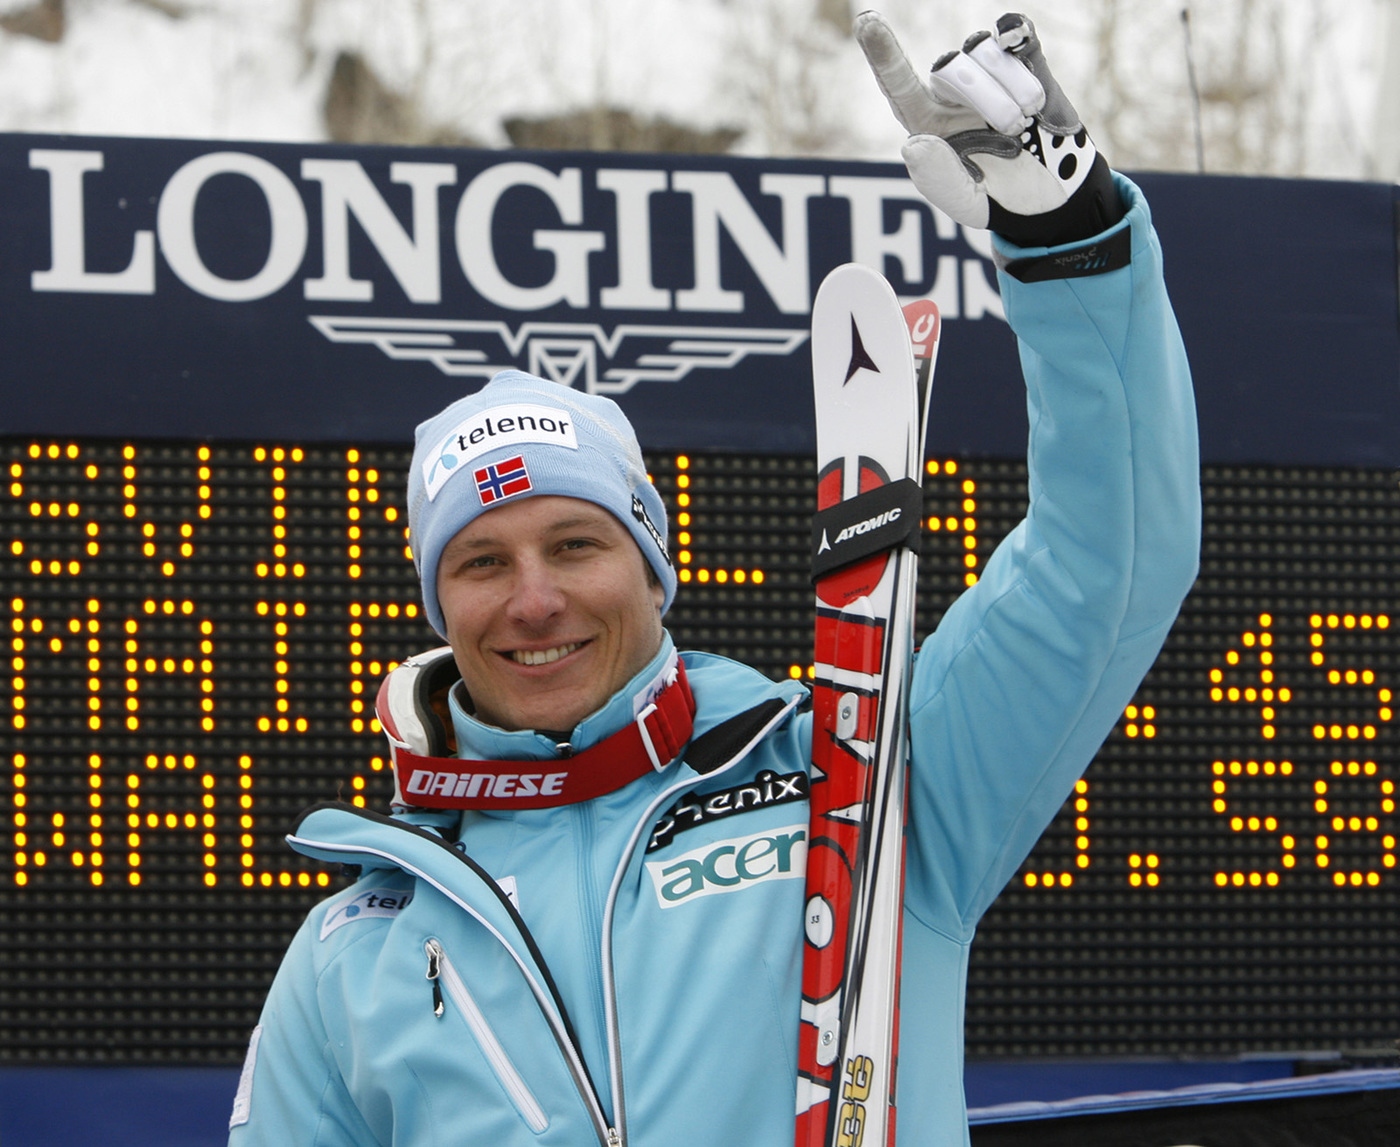 Longines Alpine Skiing Event: The Longines adventure continues with the brand's appointment as official timekeeper for the 2009 FIS Alpine Skiing World Championships 1